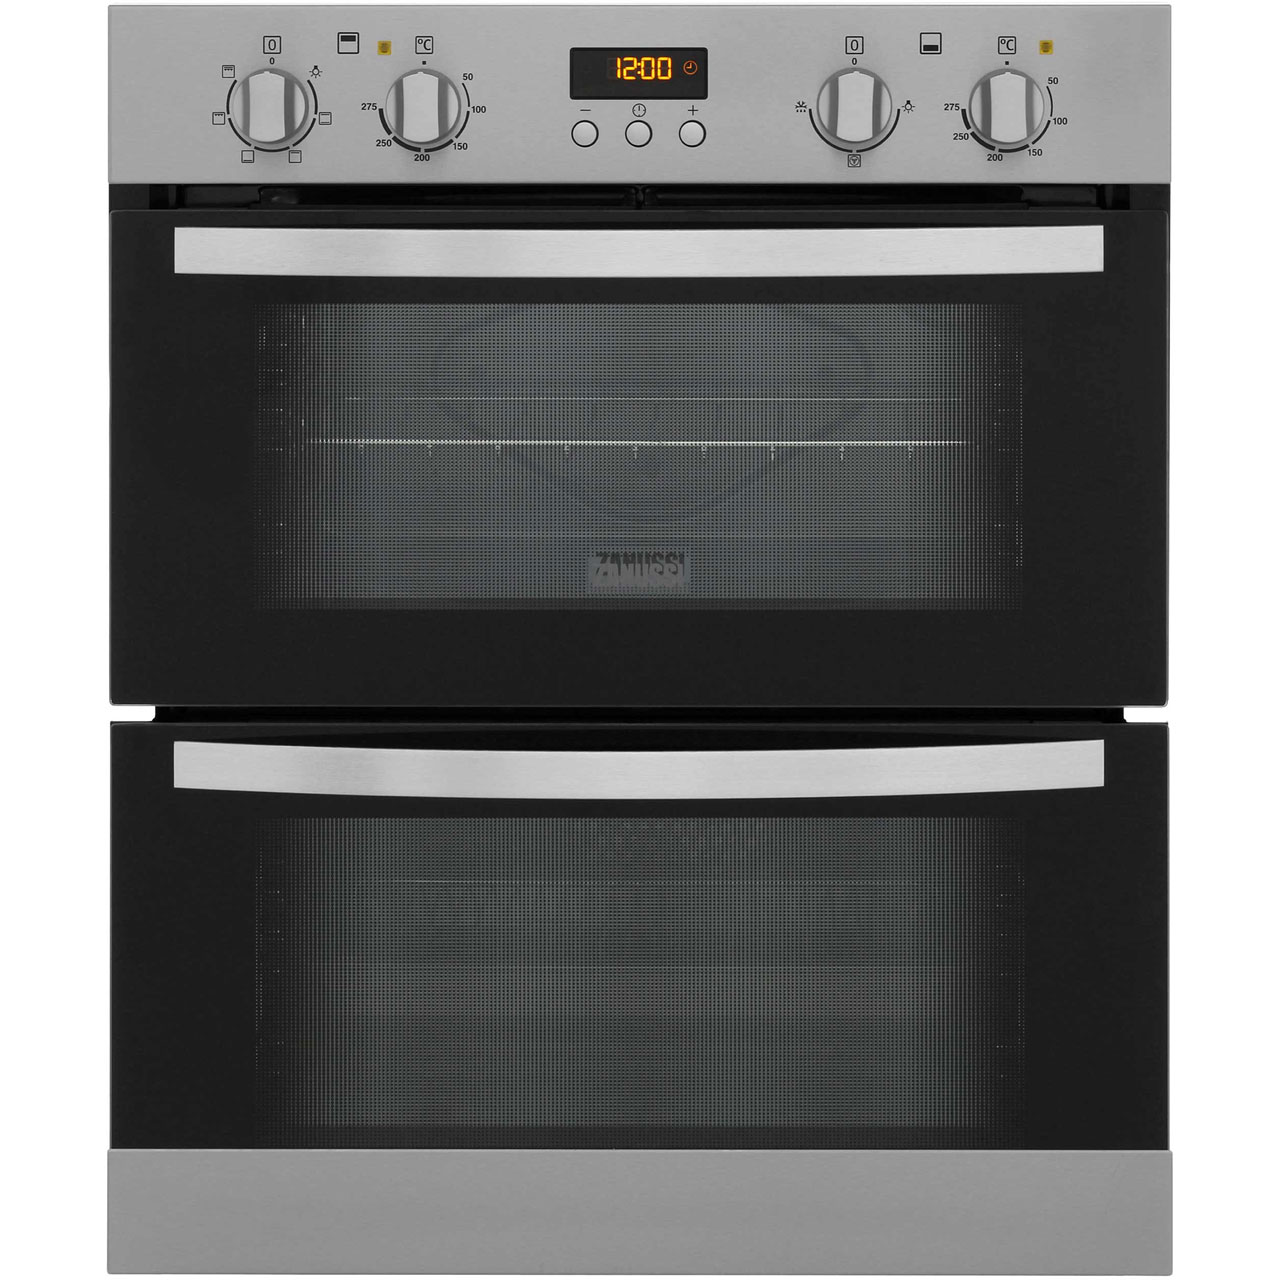 Zanussi ZOE35511XK Built Under Double Oven in Stainless Steel